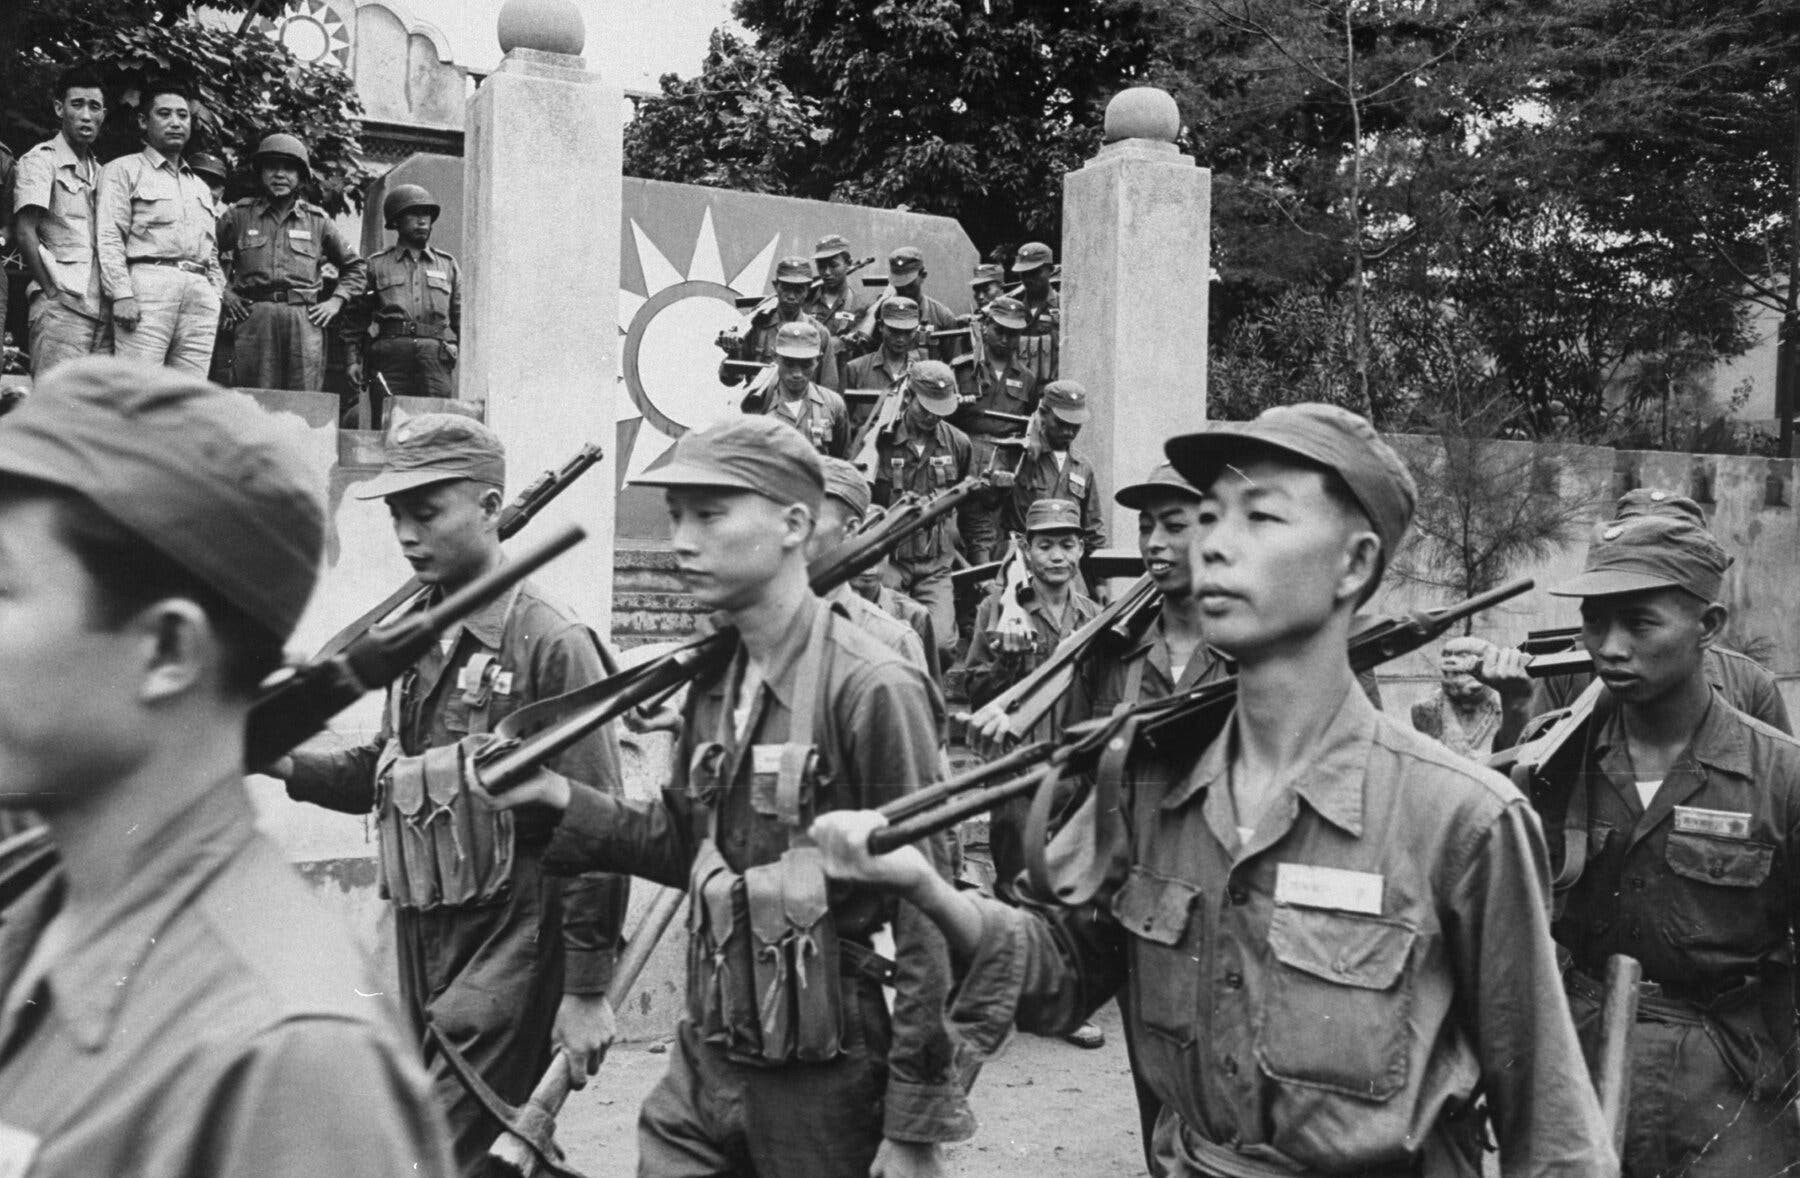 Leaked documents show US considered using nuclear weapons against China to defend Taiwan in 1958